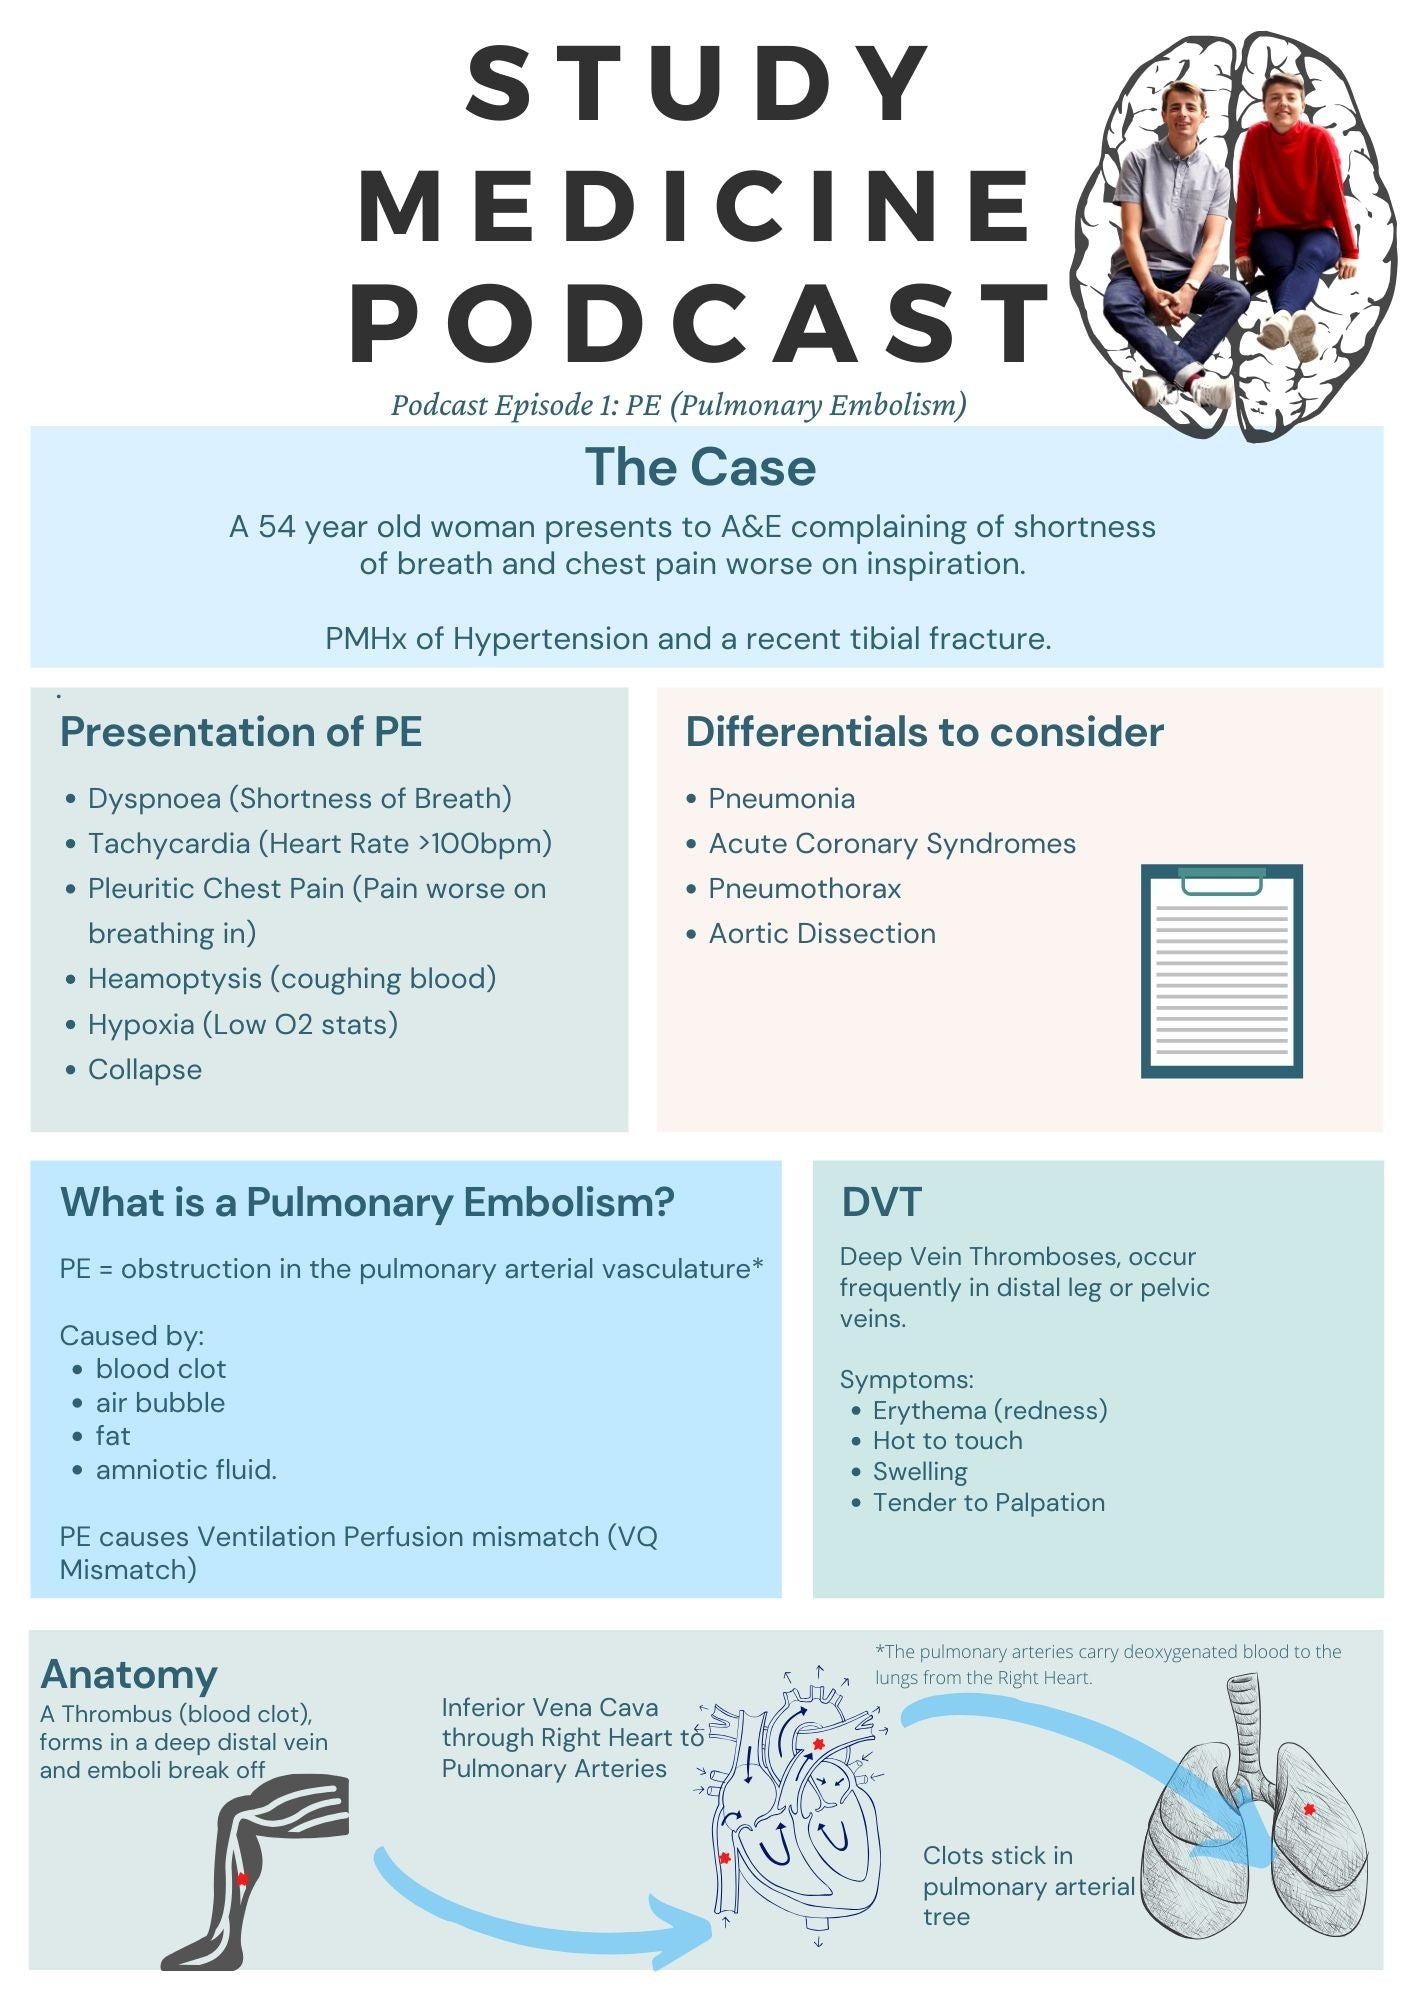 Study Medicine Podcast notes Episode 1